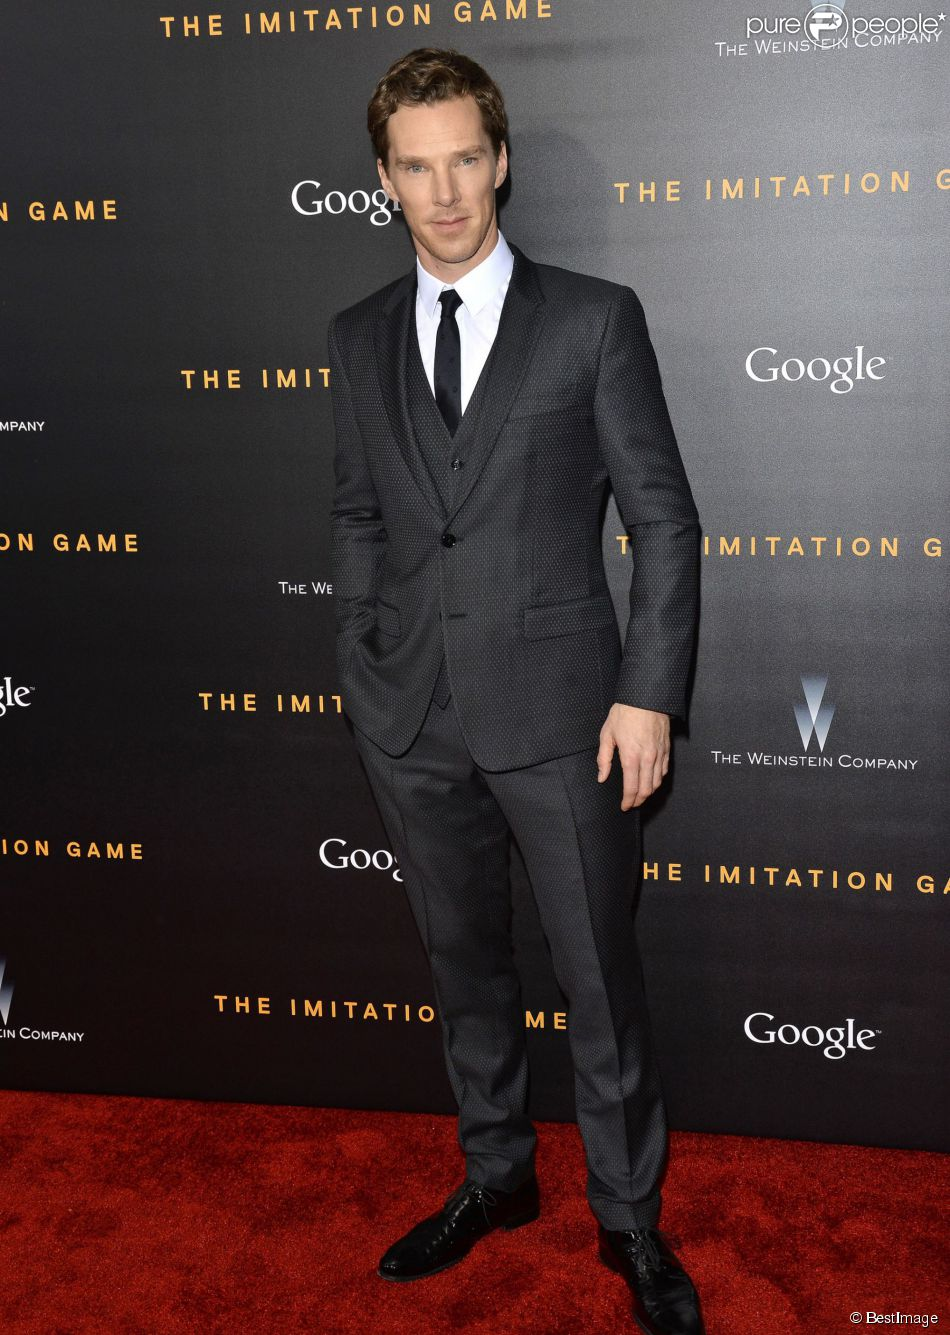 "Benedict Cumberbatch - Avant-première du film ""The Imitation Game"" au Ziegfeld Theater à New York. Le 17 novembre 2014"